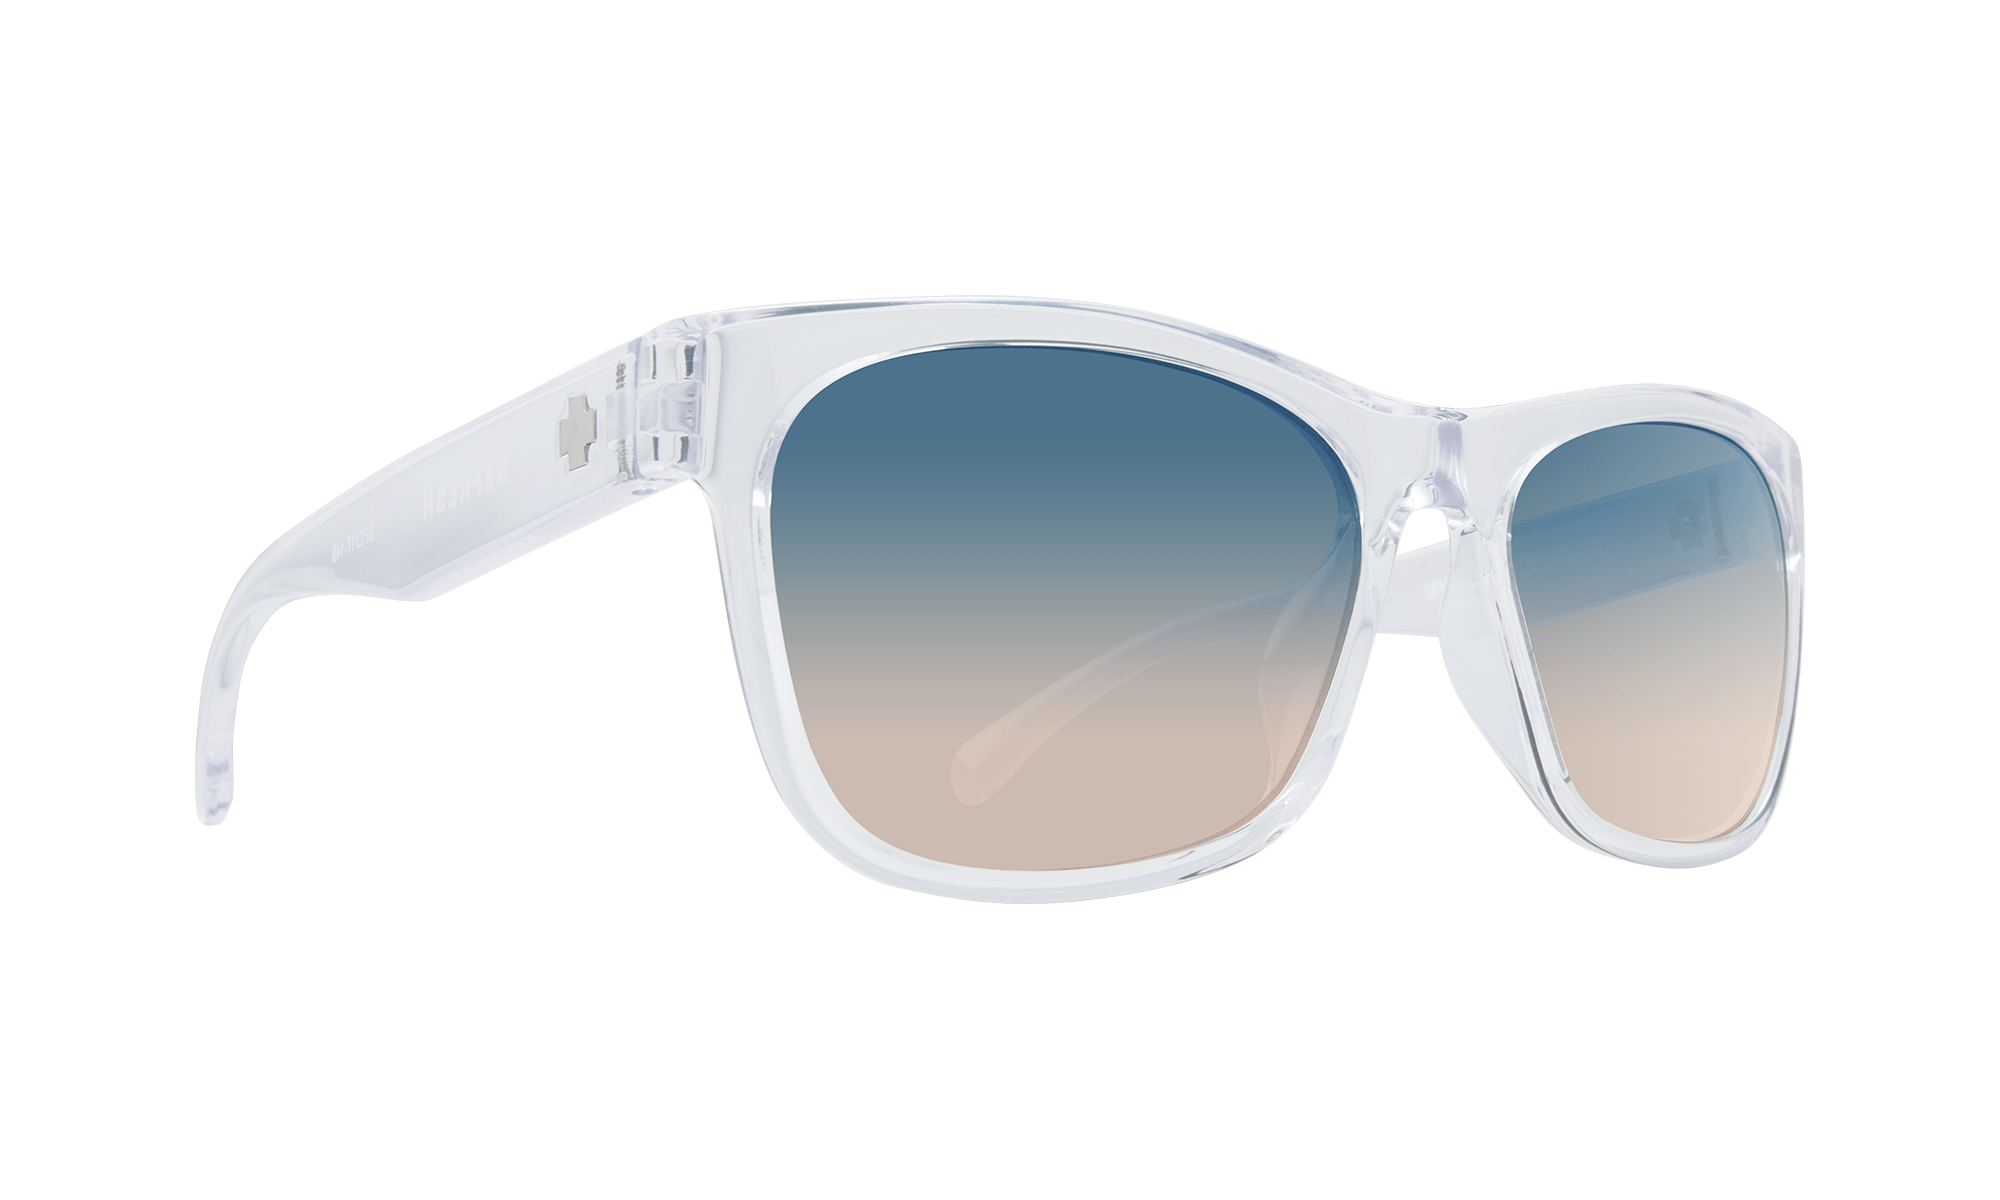 SPY Sundowner  Sunglasses  Blue Sunset Fade  57-17-145